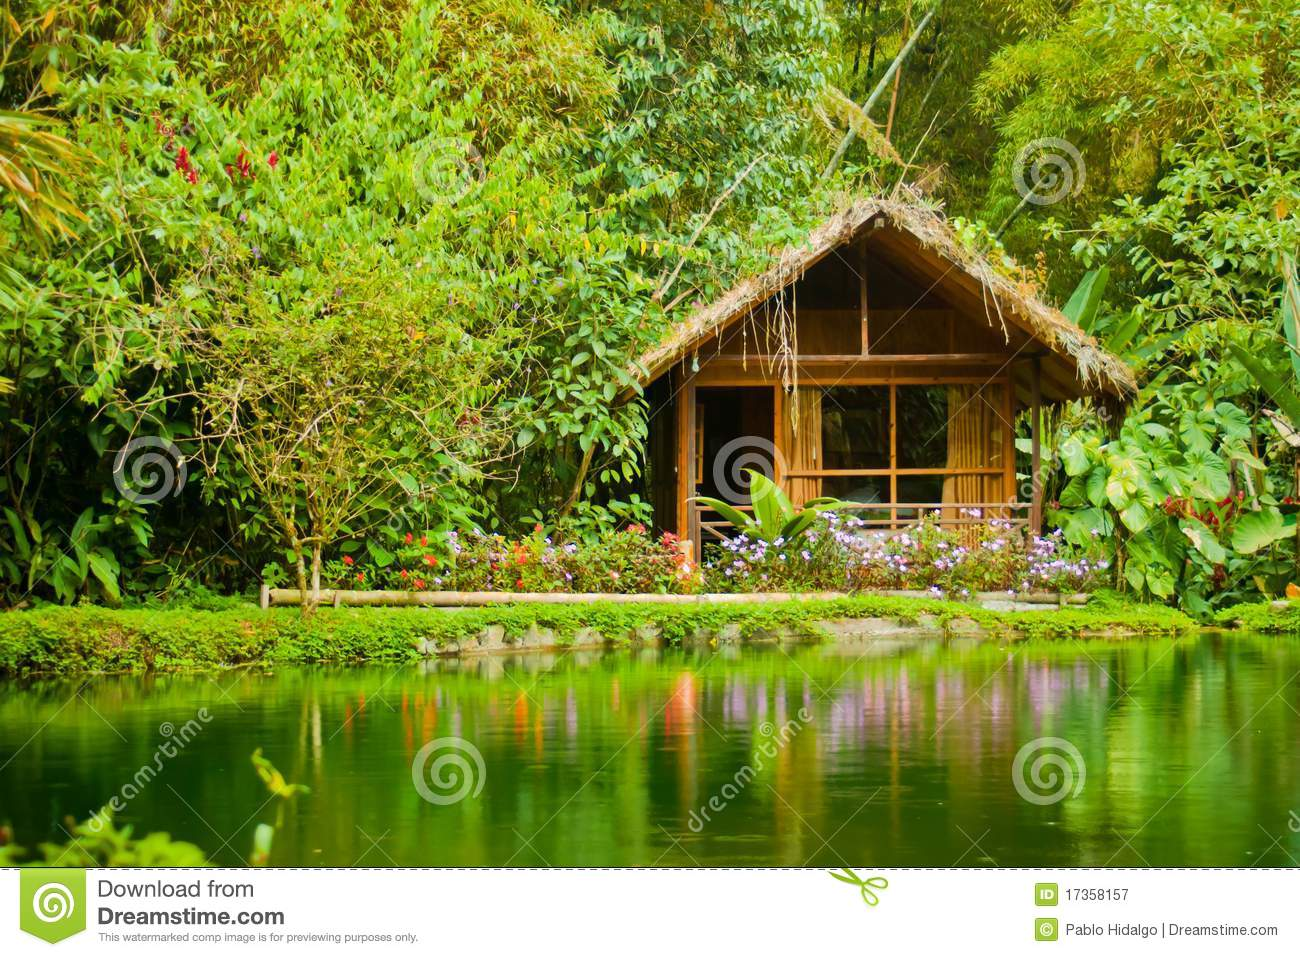 Cabin in the jungle stock image. Image of home, peeling